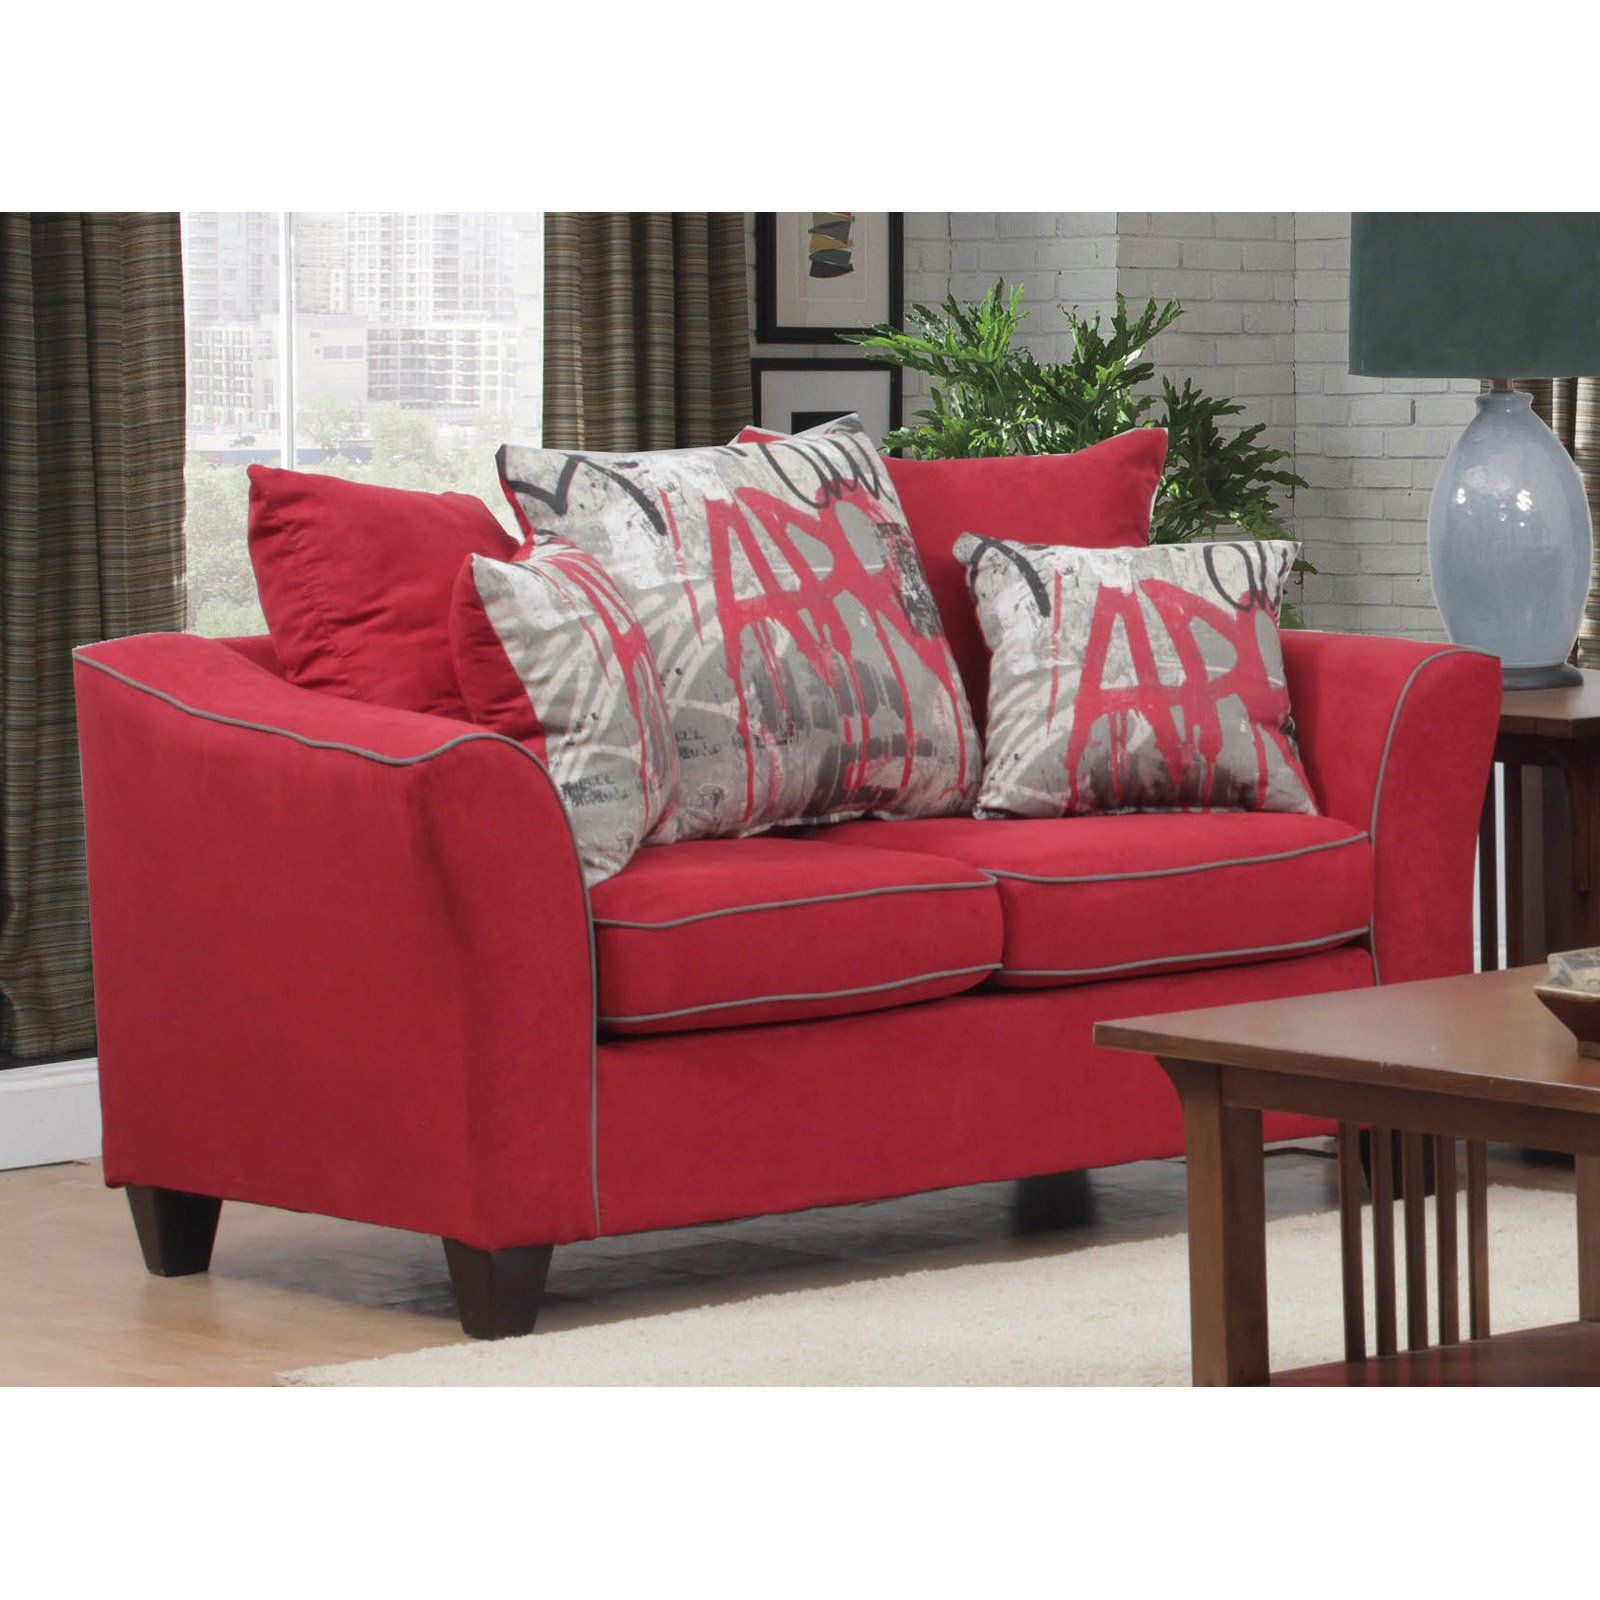 Chelsea Home Brier Loveseat with Toss Pillows